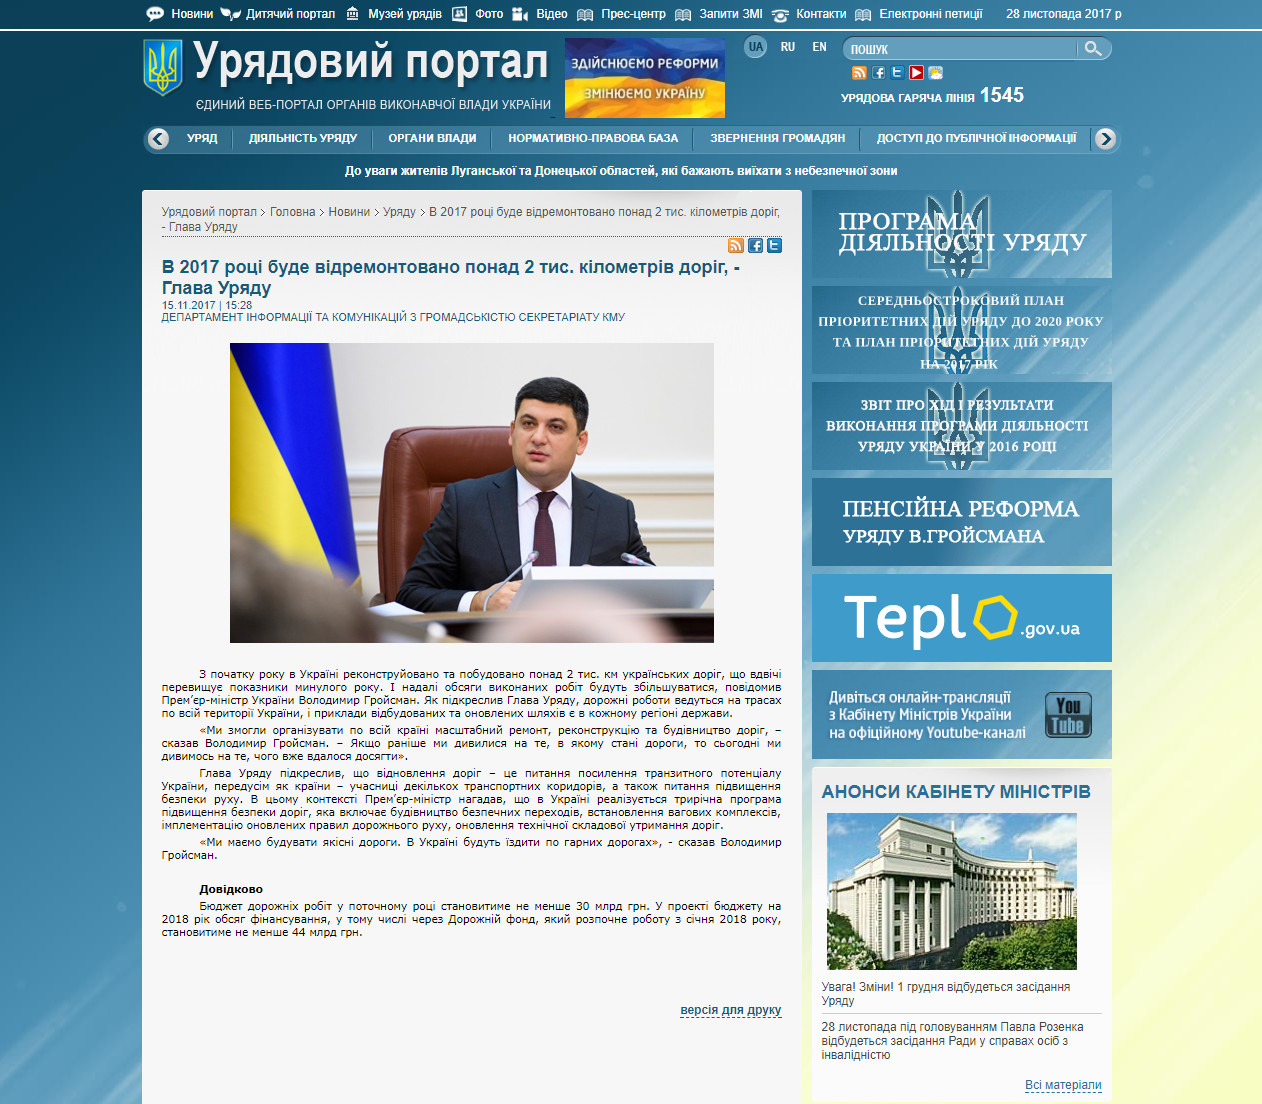 http://www.kmu.gov.ua/control/uk/publish/article?art_id=250425448&cat_id=244276429